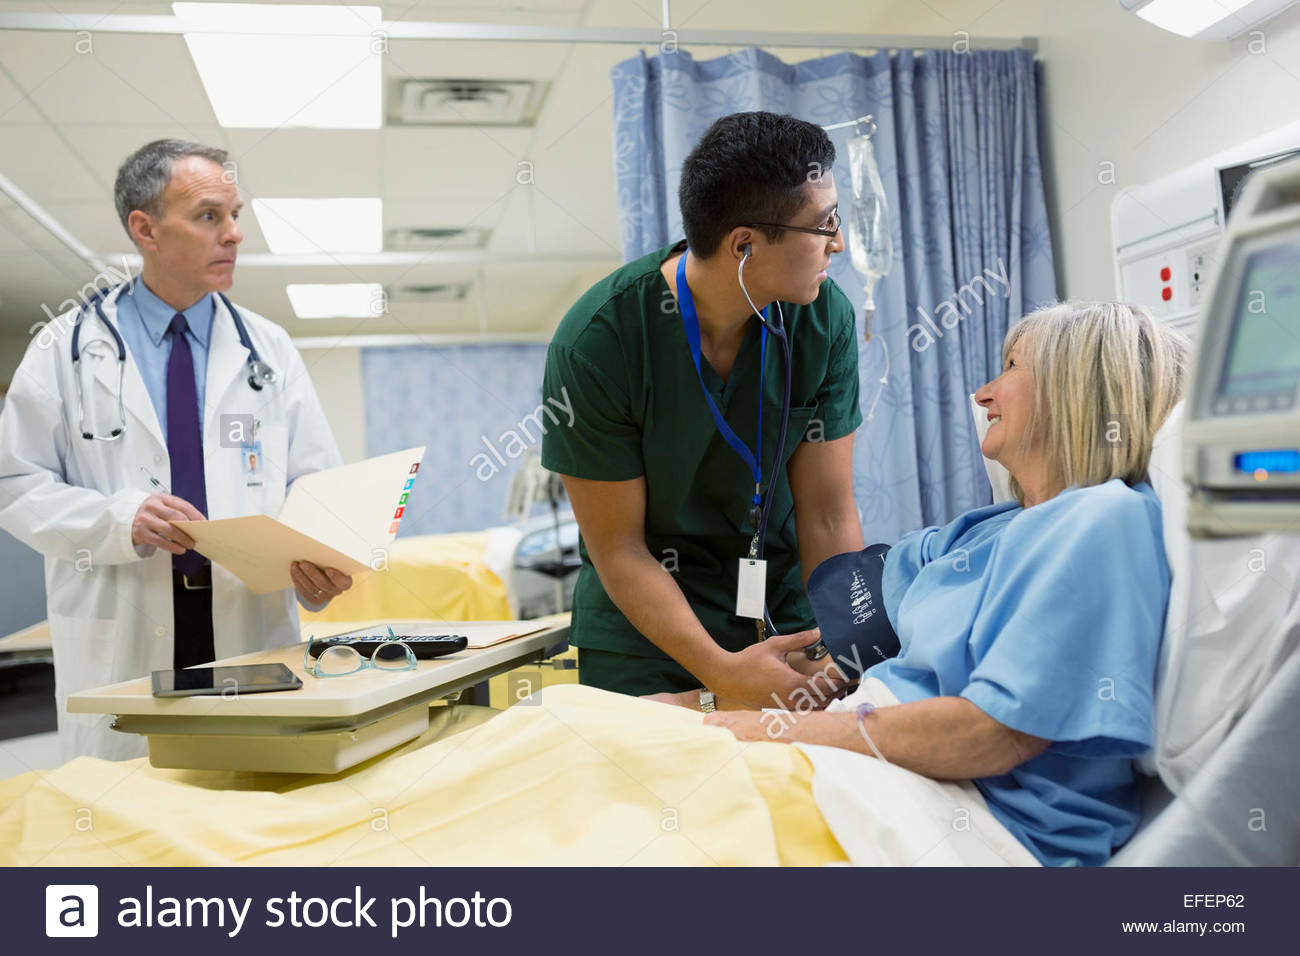 Male nurse checking patients blood pressure in hospital - Stock Image